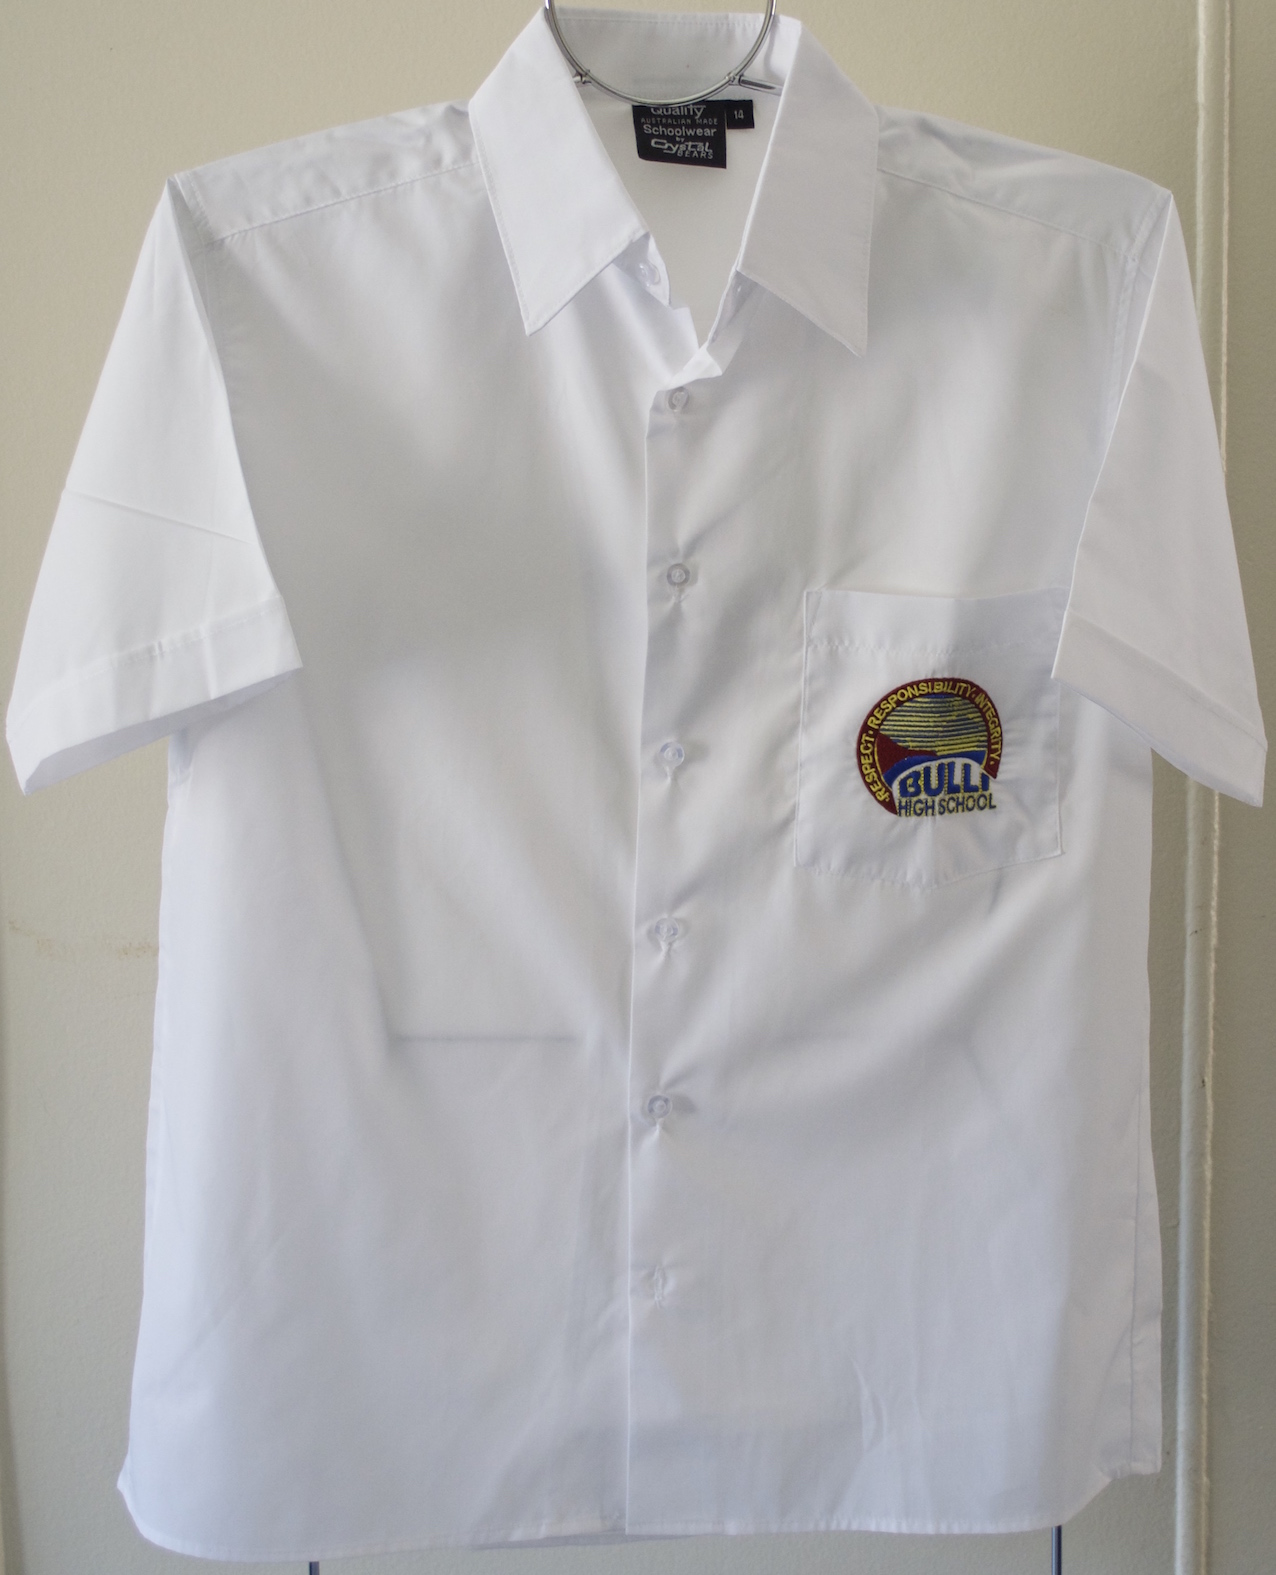 Senior boy's button shirt